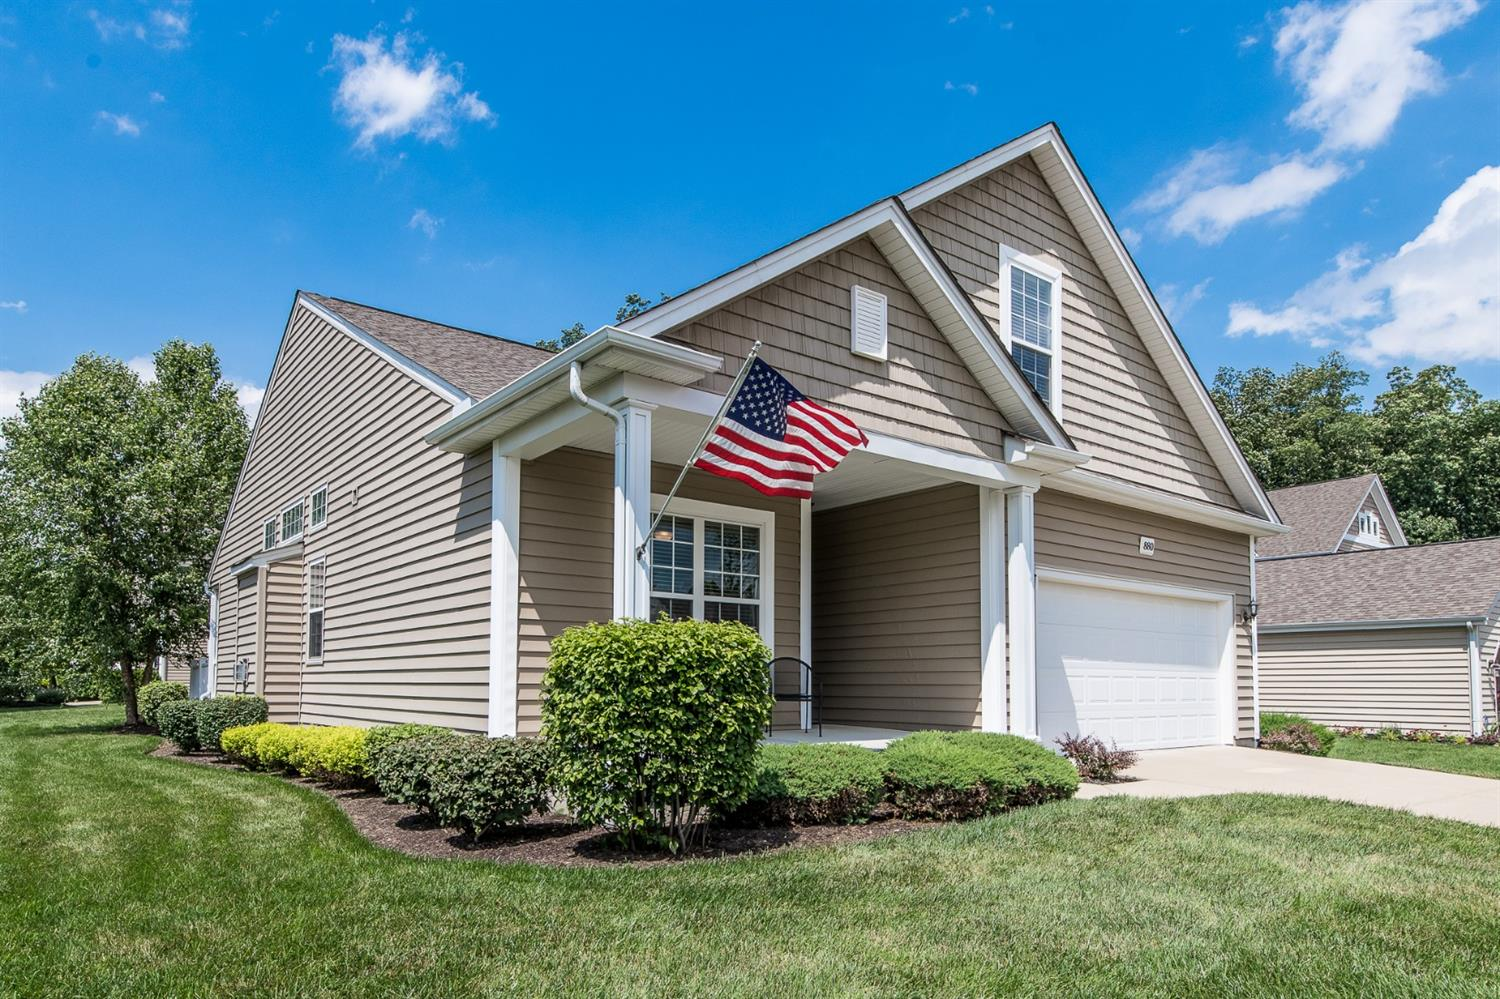 880 Ellery Dr Union Twp. (Clermont), OH